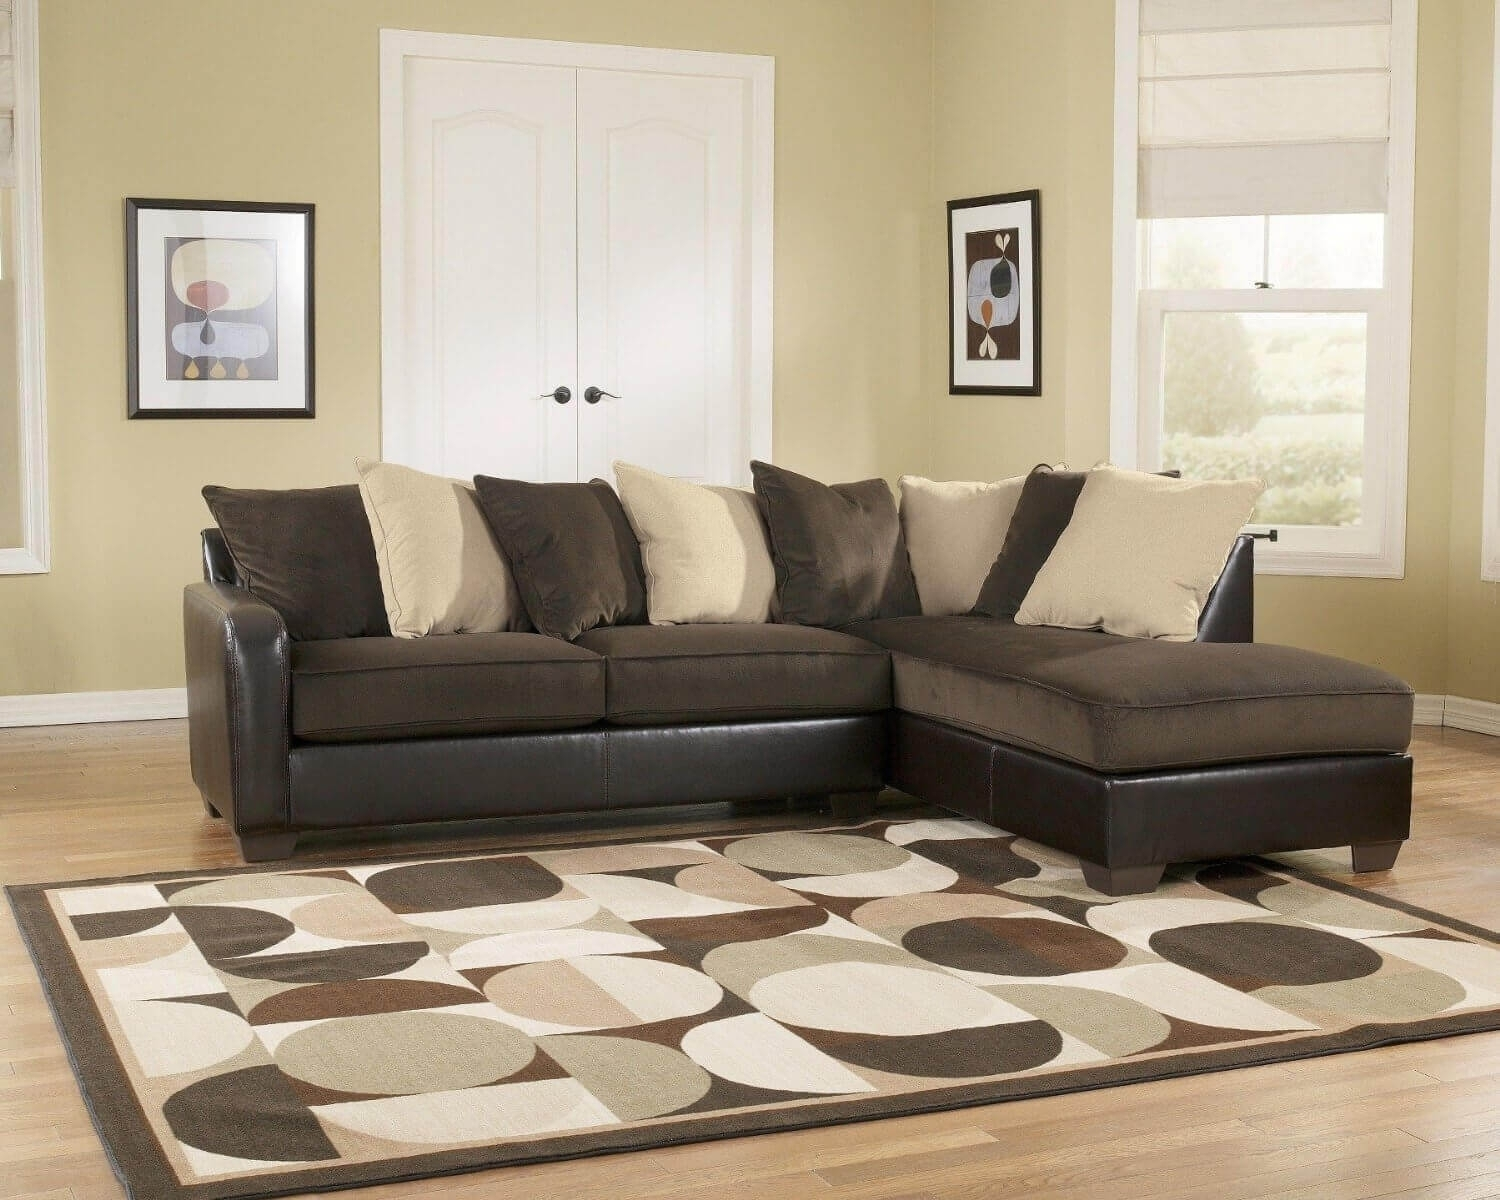 3Pc Euro Design Dark Gray Microfiber Sectional Sofa • Sectional Sofa In Sectional Sofas Under  (Image 1 of 10)